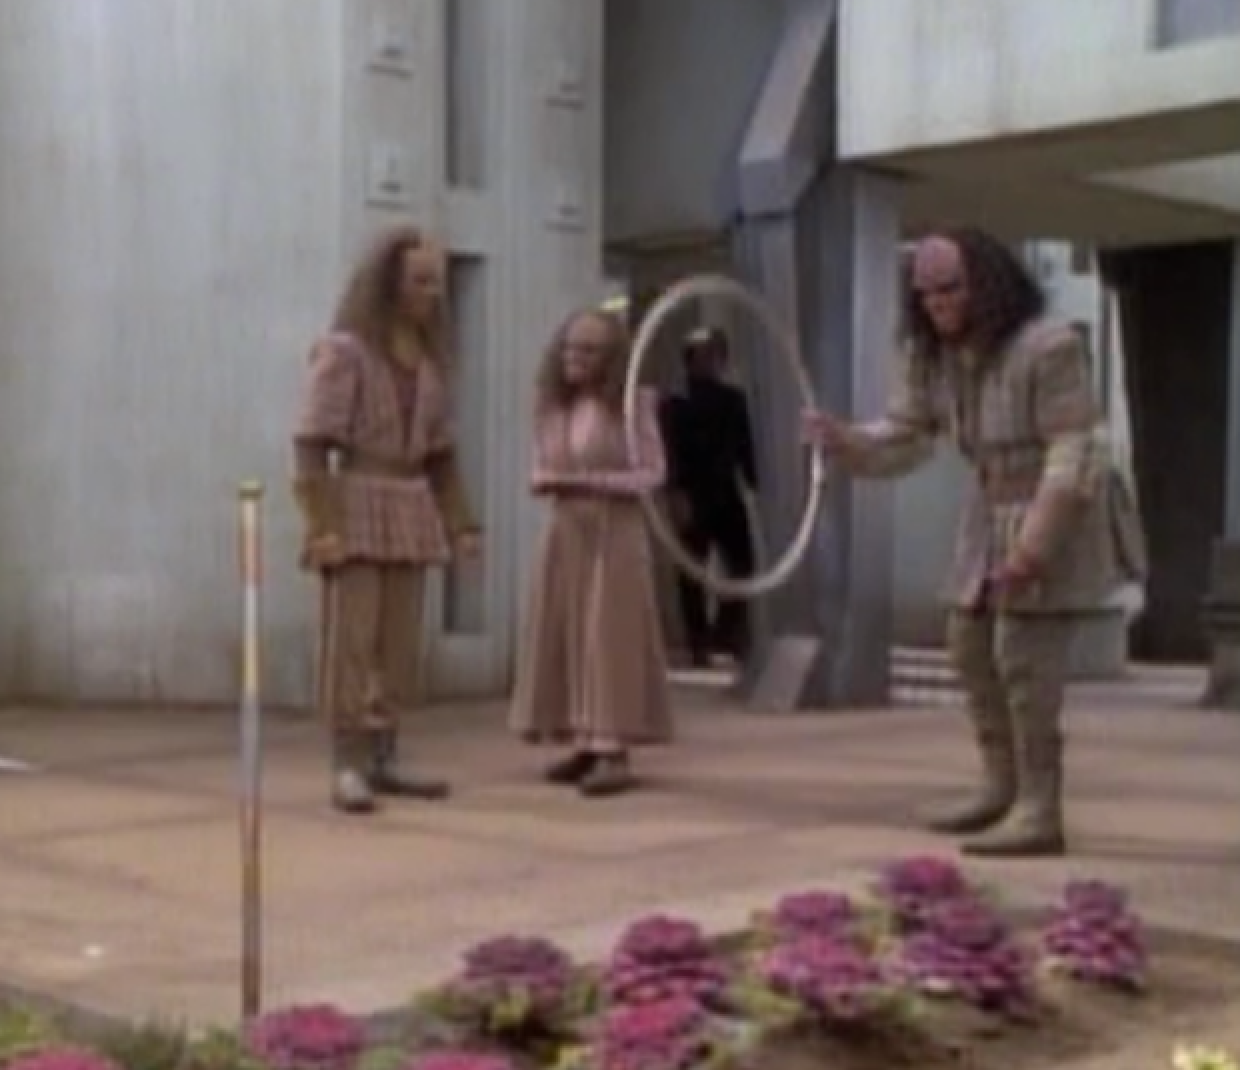 lol spotted a Klingon hula hoop while watching Star Trek